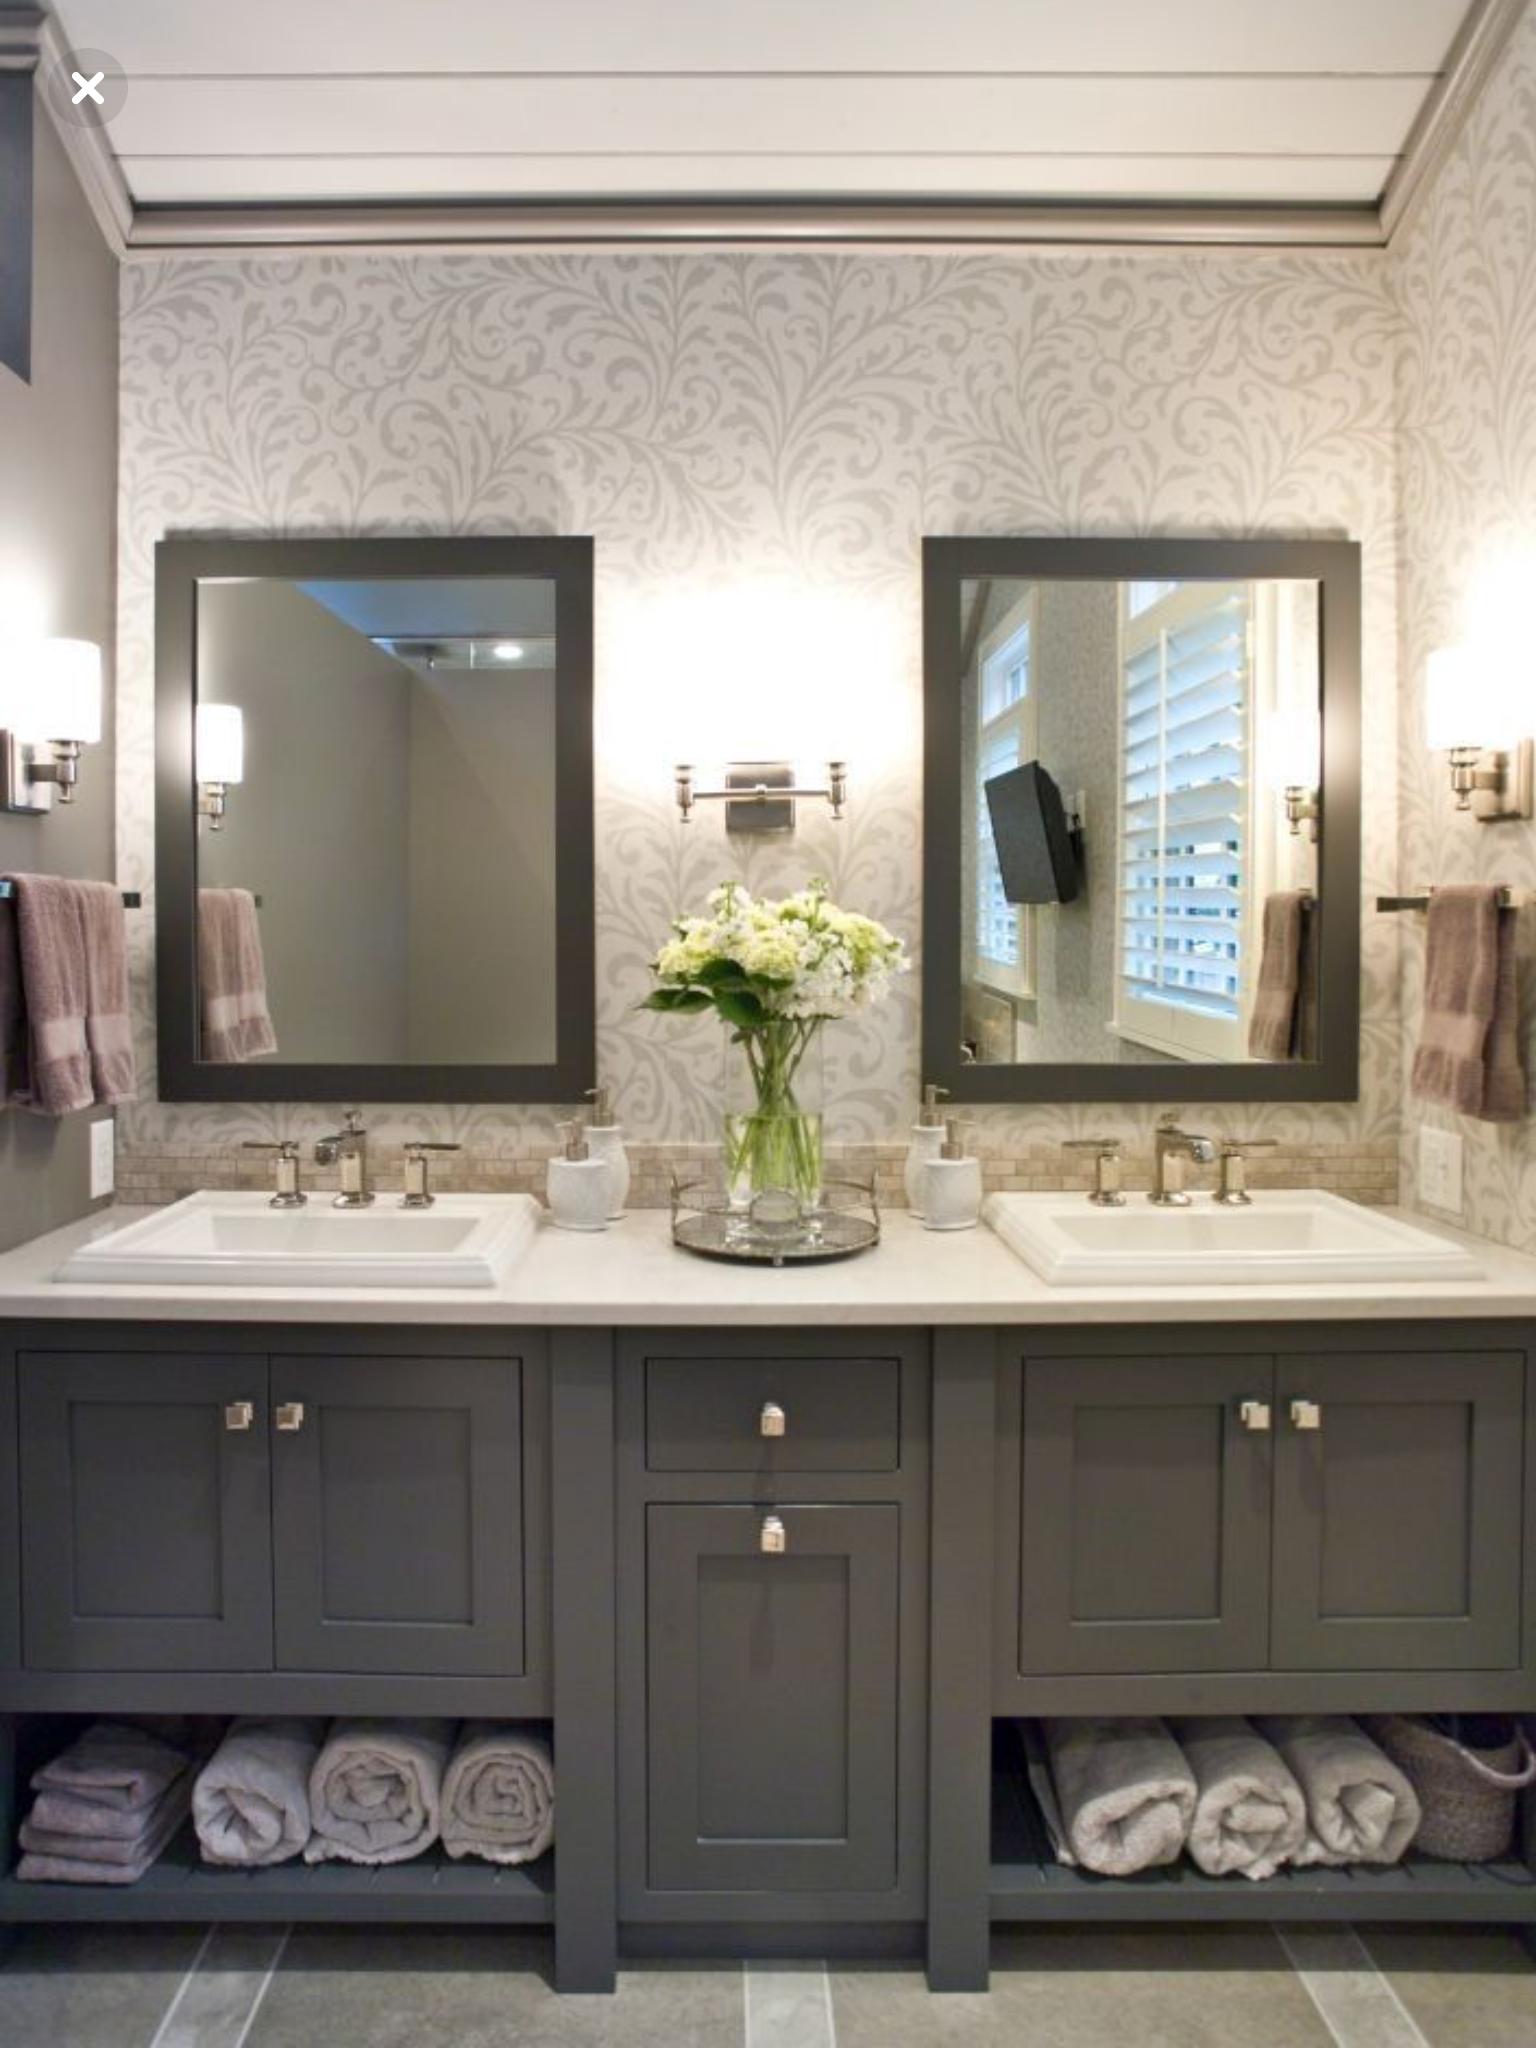 37 Modern Bathroom Vanity Ideas For Your Next Remodel In 2020 Bathroom Vanity Designs Custom Bathroom Bathrooms Remodel